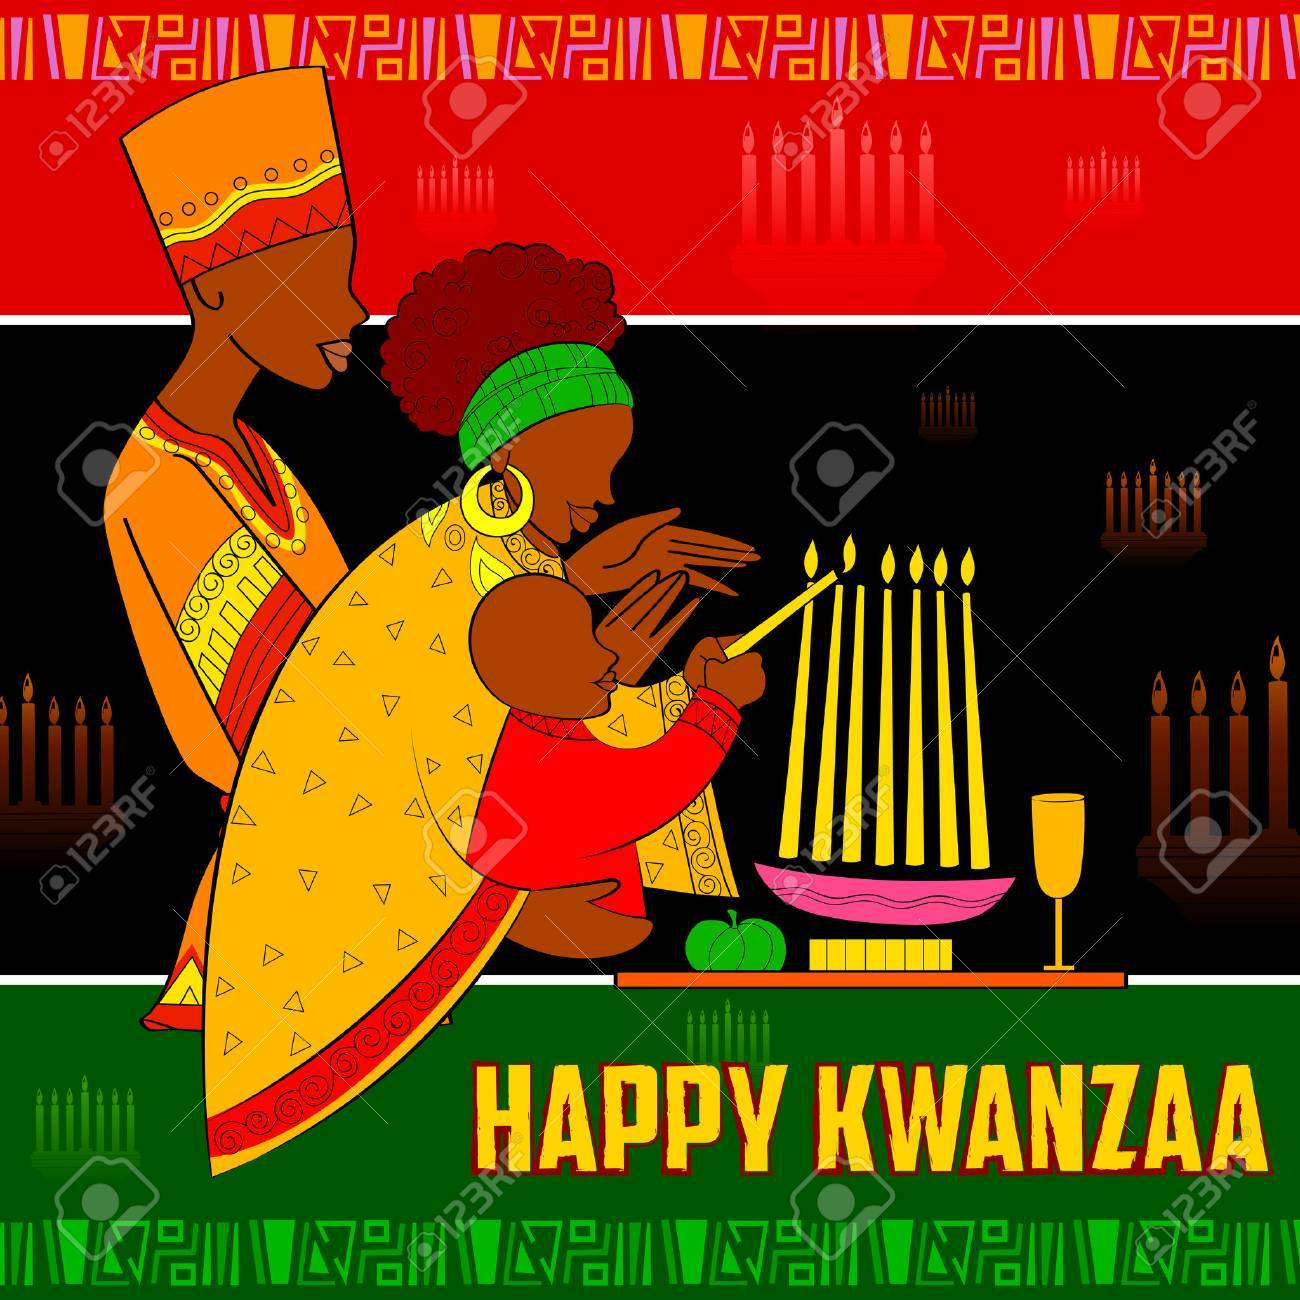 illustration of Happy Kwanzaa greetings for celebration of African American holiday festival of harvest - 68044912